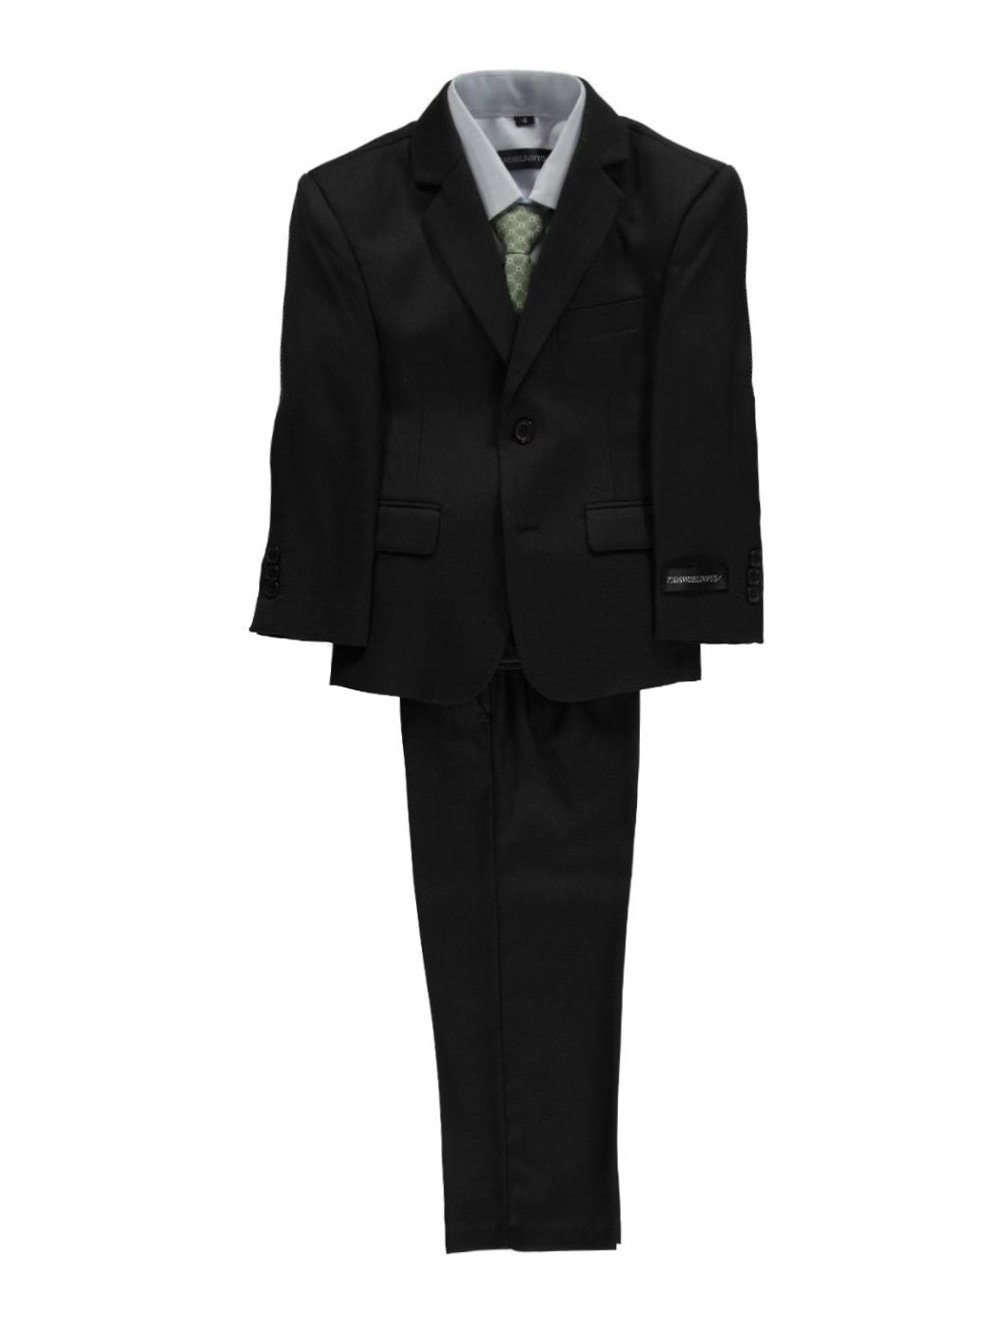 Kids World Big Boys'Titchwell 5-Piece Suit - Dark Olive, 14